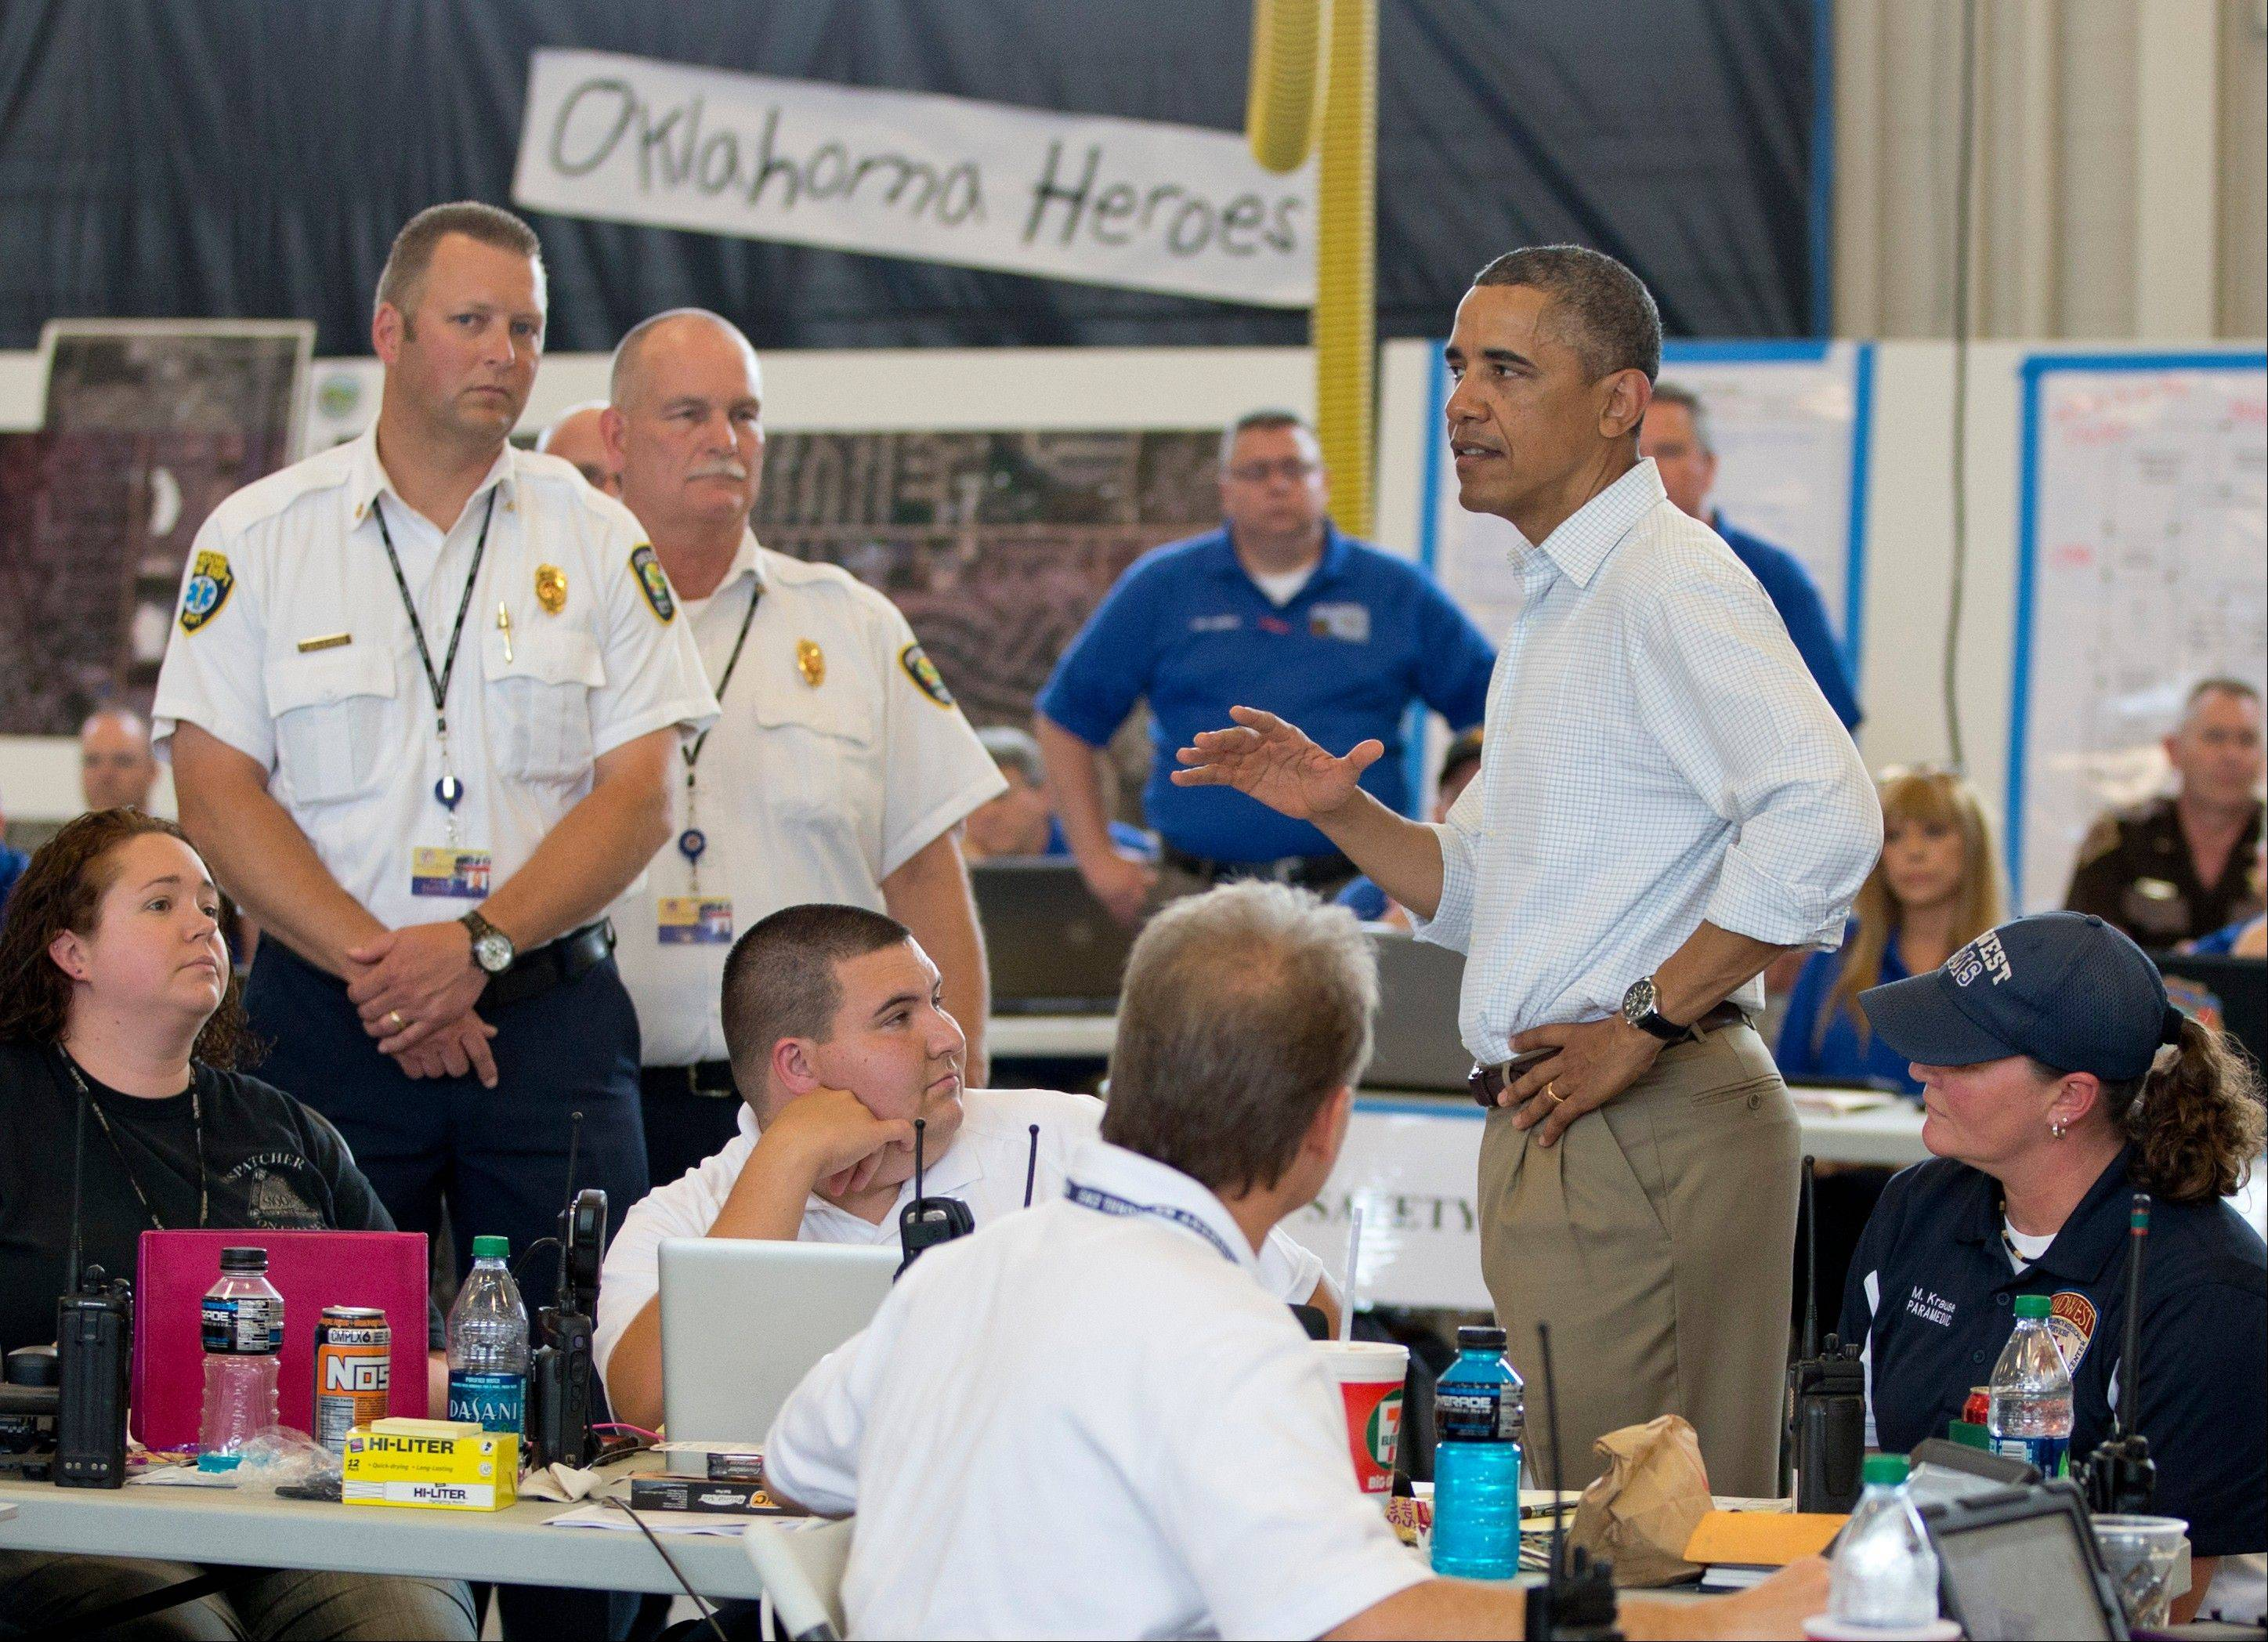 President Barack Obama meets with first responders during a tour of the devastation in Moore, Okla., Sunday, May 26, 2013, after the massive tornado and severe weather the week before.